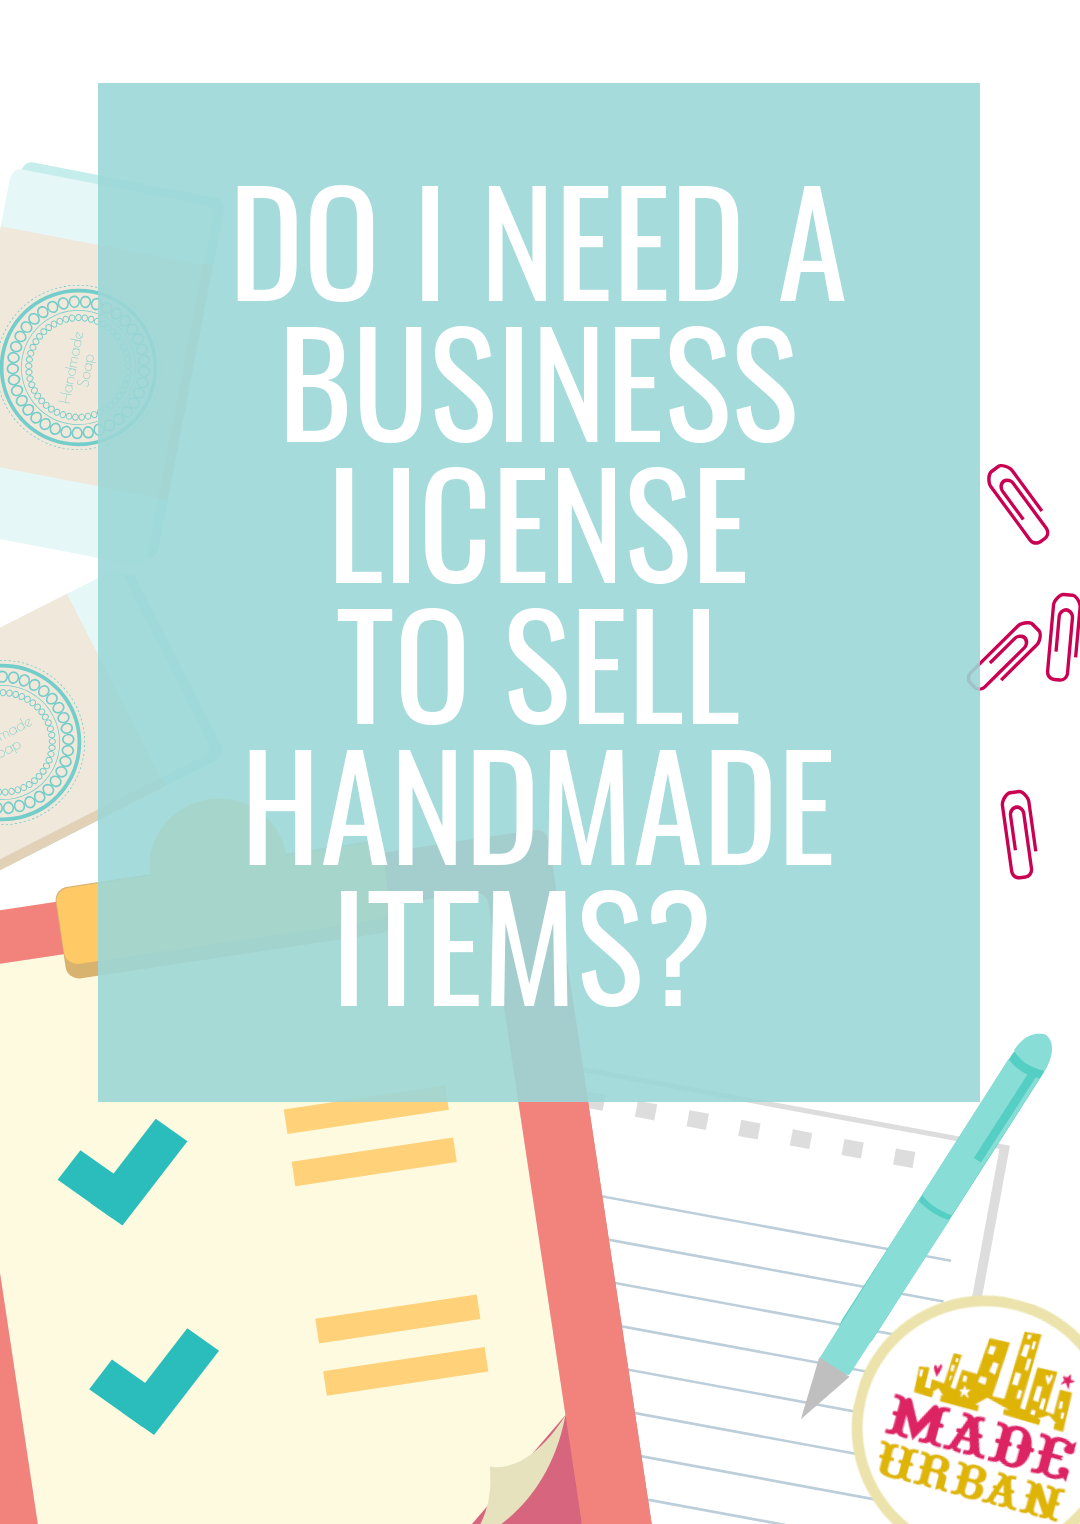 A lot of handmade businesses are operating illegally and without the proper business license and registration. Find out if you're followed the proper steps and laws to set up your business.